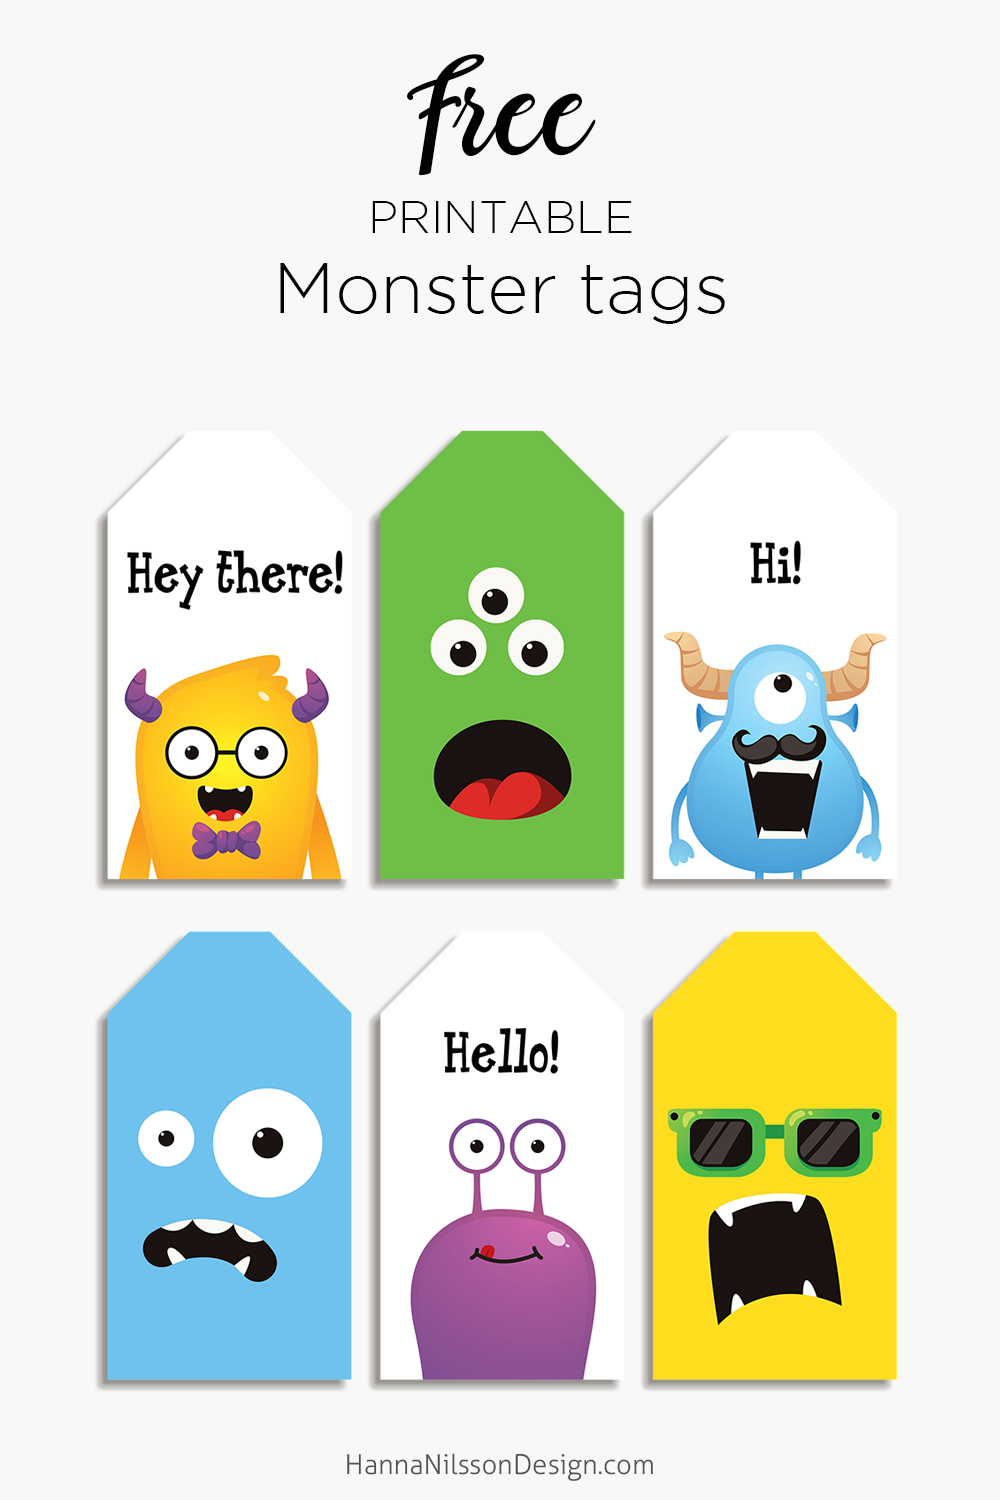 photo regarding Printable Monster referred to as Free of charge printable Monster tags Hanna Nilsson Layout